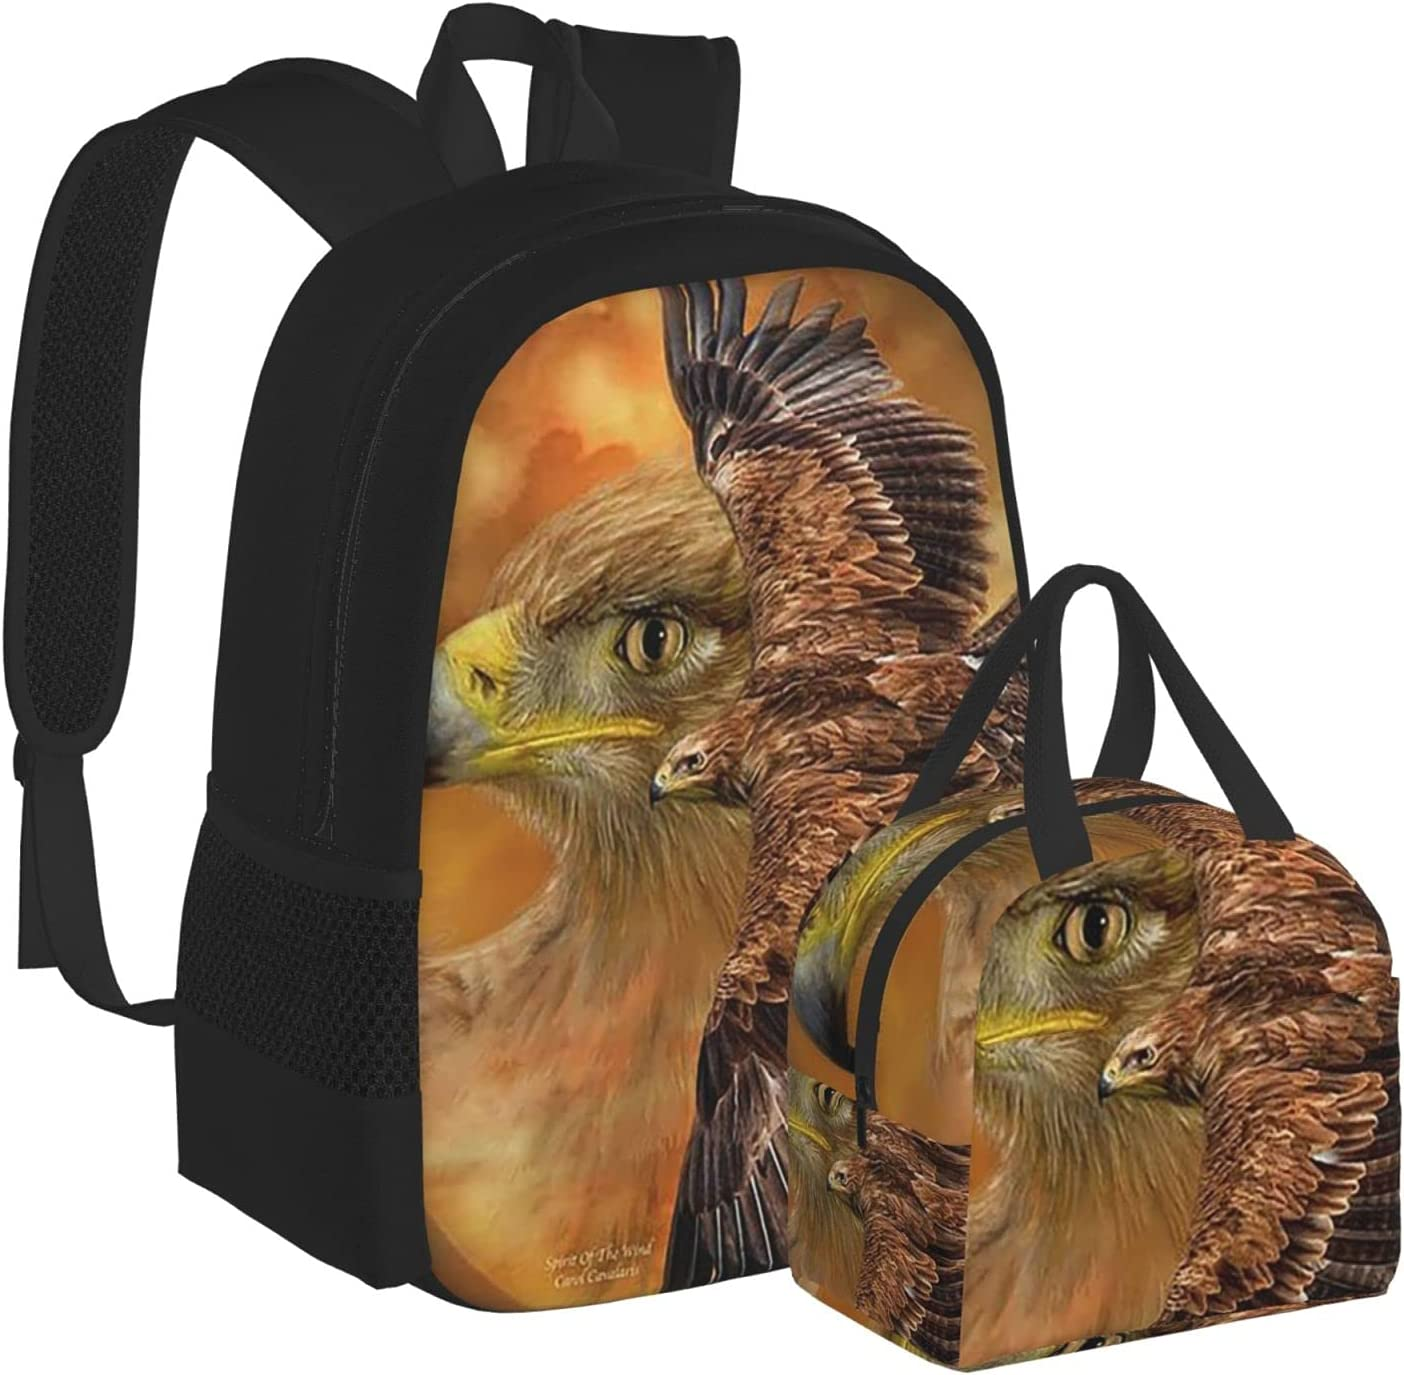 Flying Bald Eagle Cross Space Middle For Backpack Schoolbag Free shipping on posting reviews Popular overseas Scho